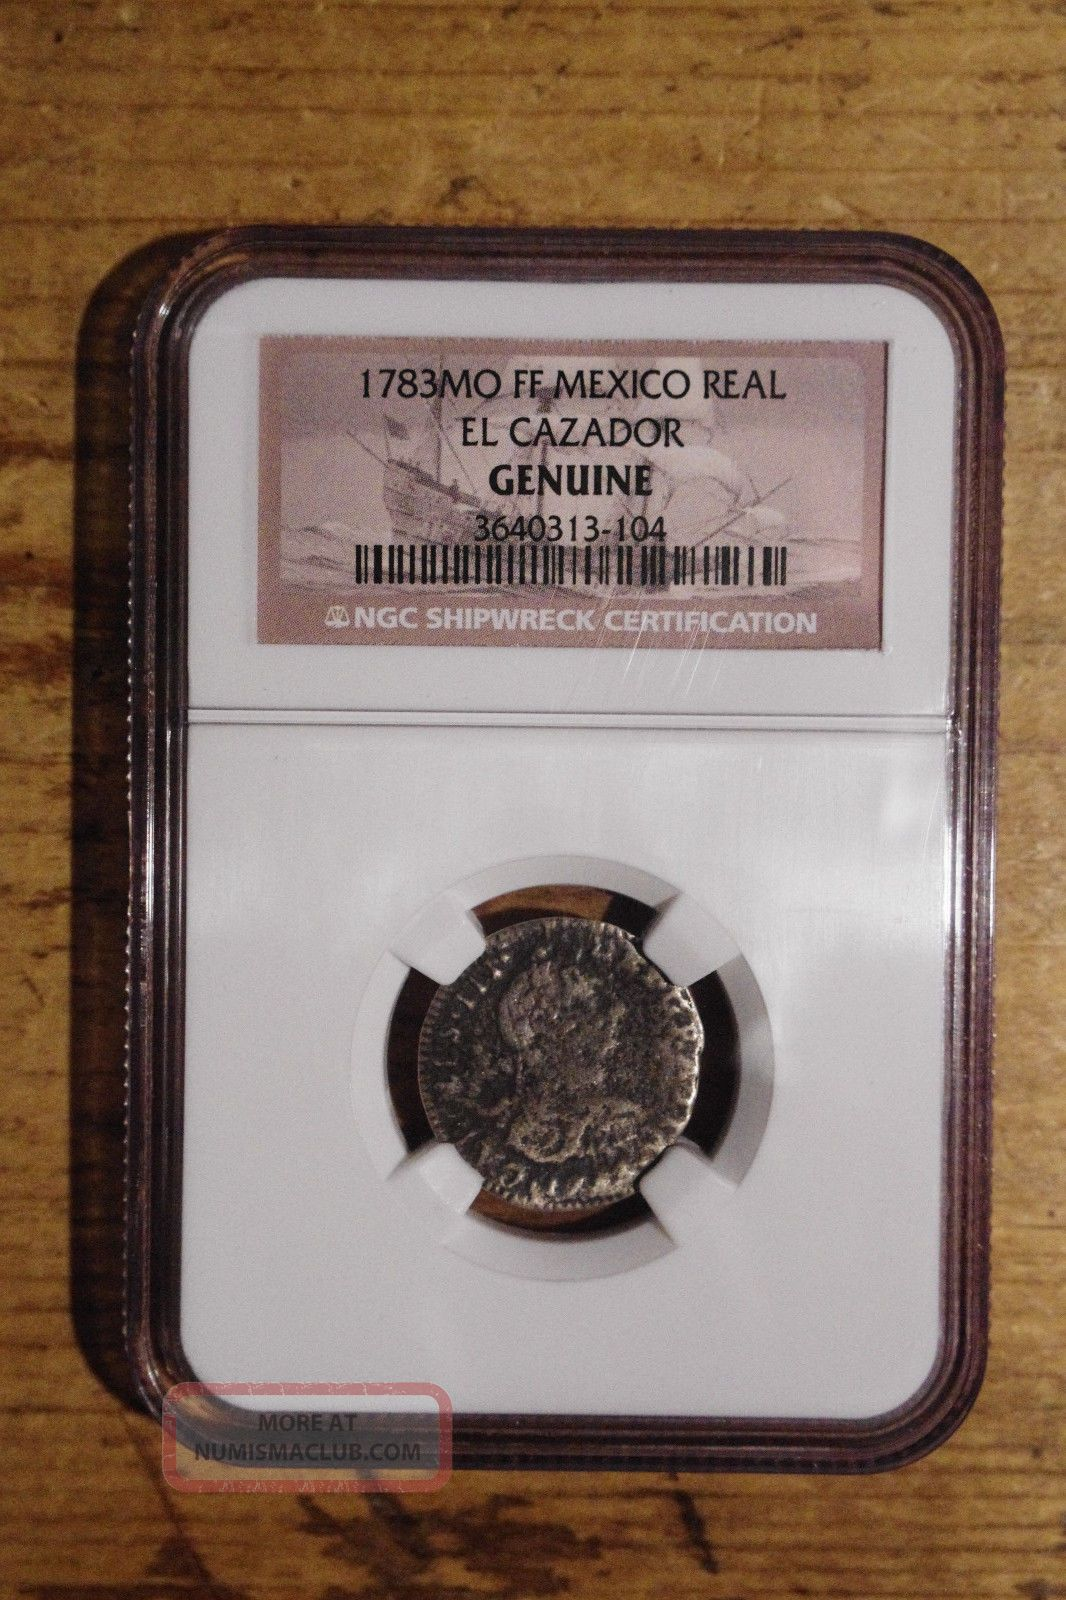 El Cazador 1783 1 Real Ngc Certified Silver Shipwreck Coin Good Detail Spain Europe photo